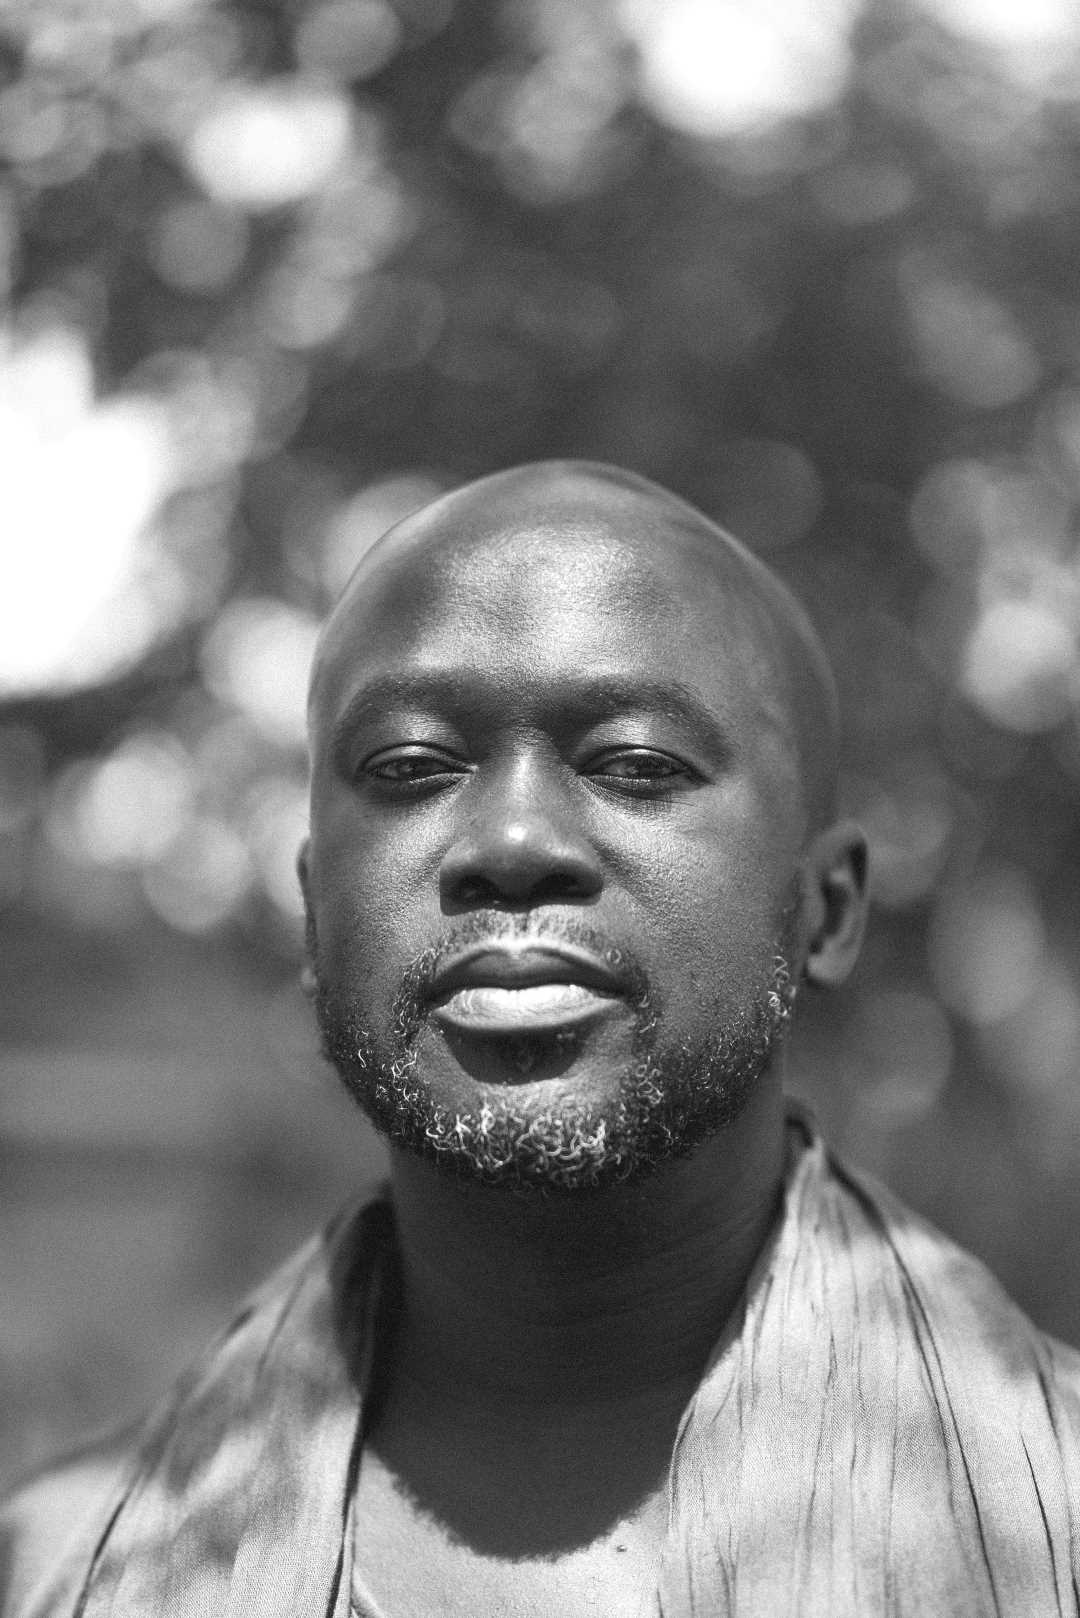 RIBA winner Sir David Adjaye on the future of memorials